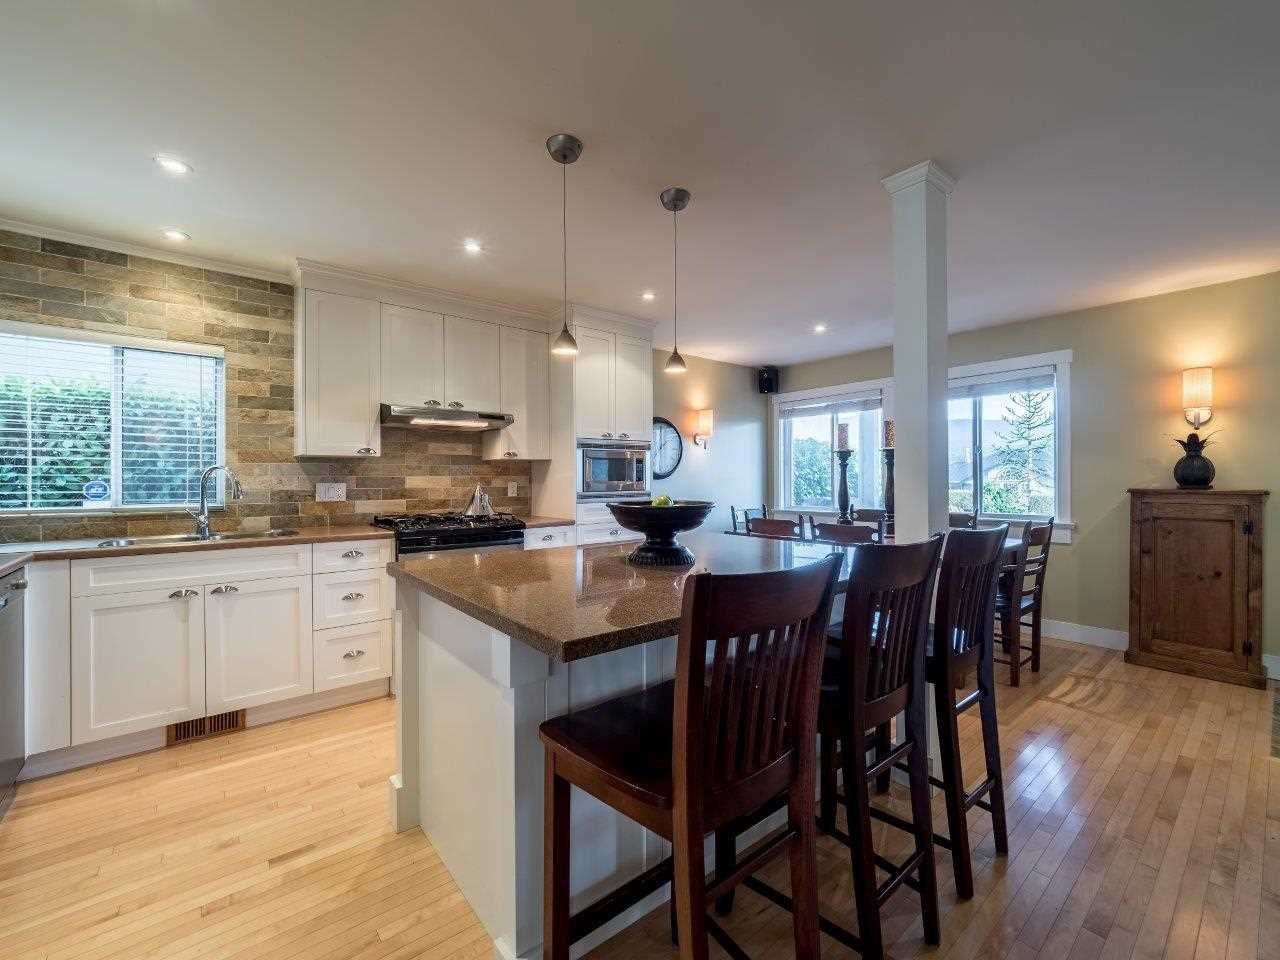 Photo 7: Photos: 345 BEACHVIEW DRIVE in North Vancouver: Dollarton House for sale : MLS®# R2035403